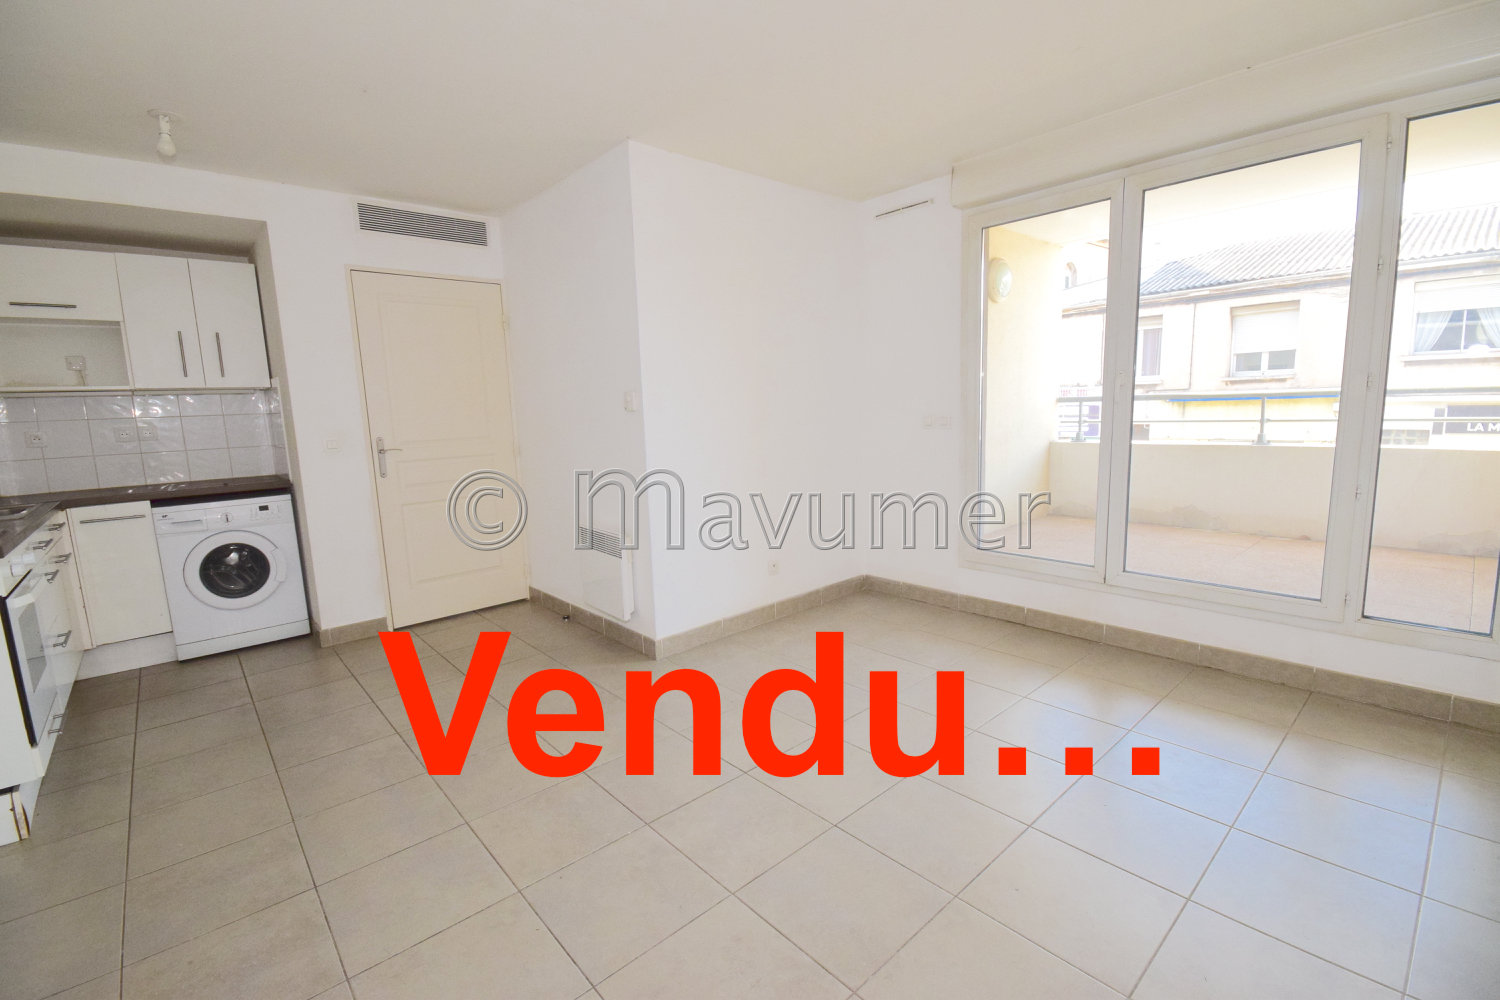 APPARTEMENT T3 PROCHE PLAGE MARSEILLE 13008 MADRAGUE MONTREDON